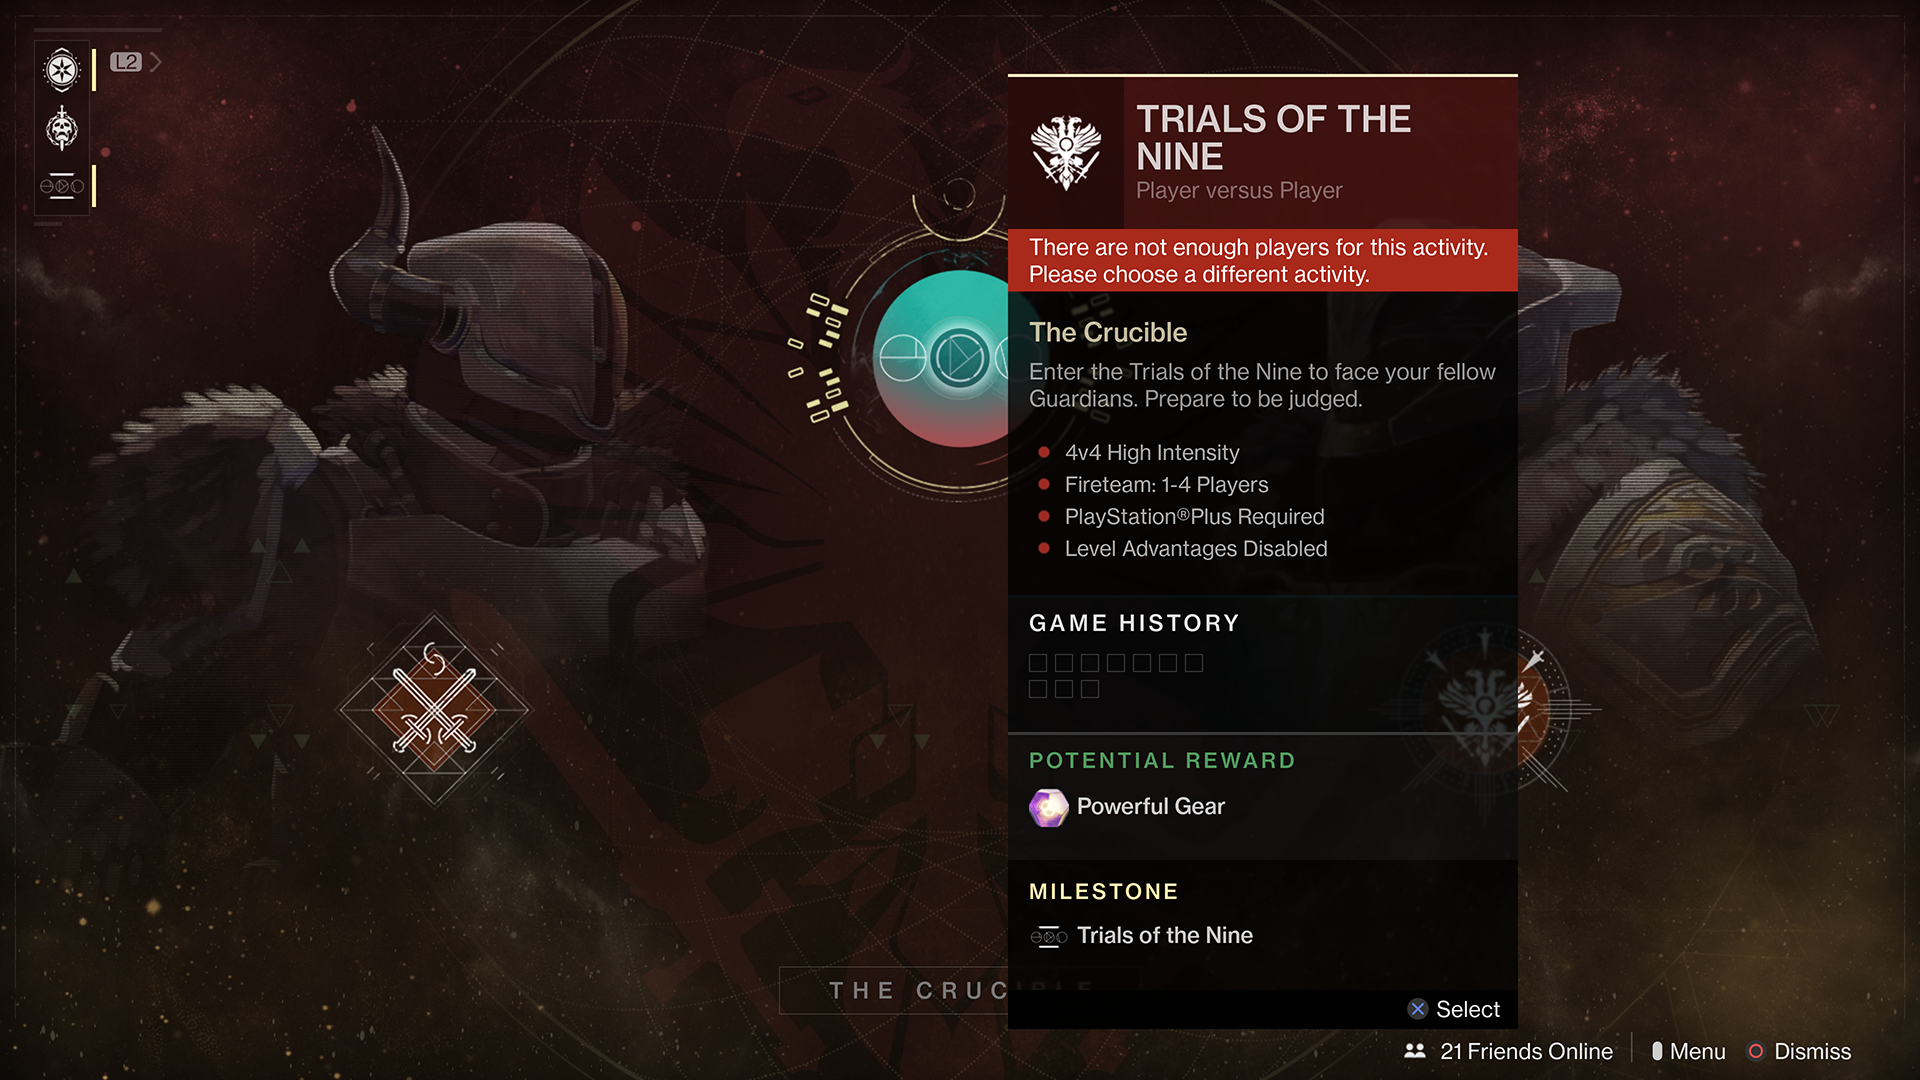 Destiny 2 S Trials Of The Nine Is Worth Playing For The Badass